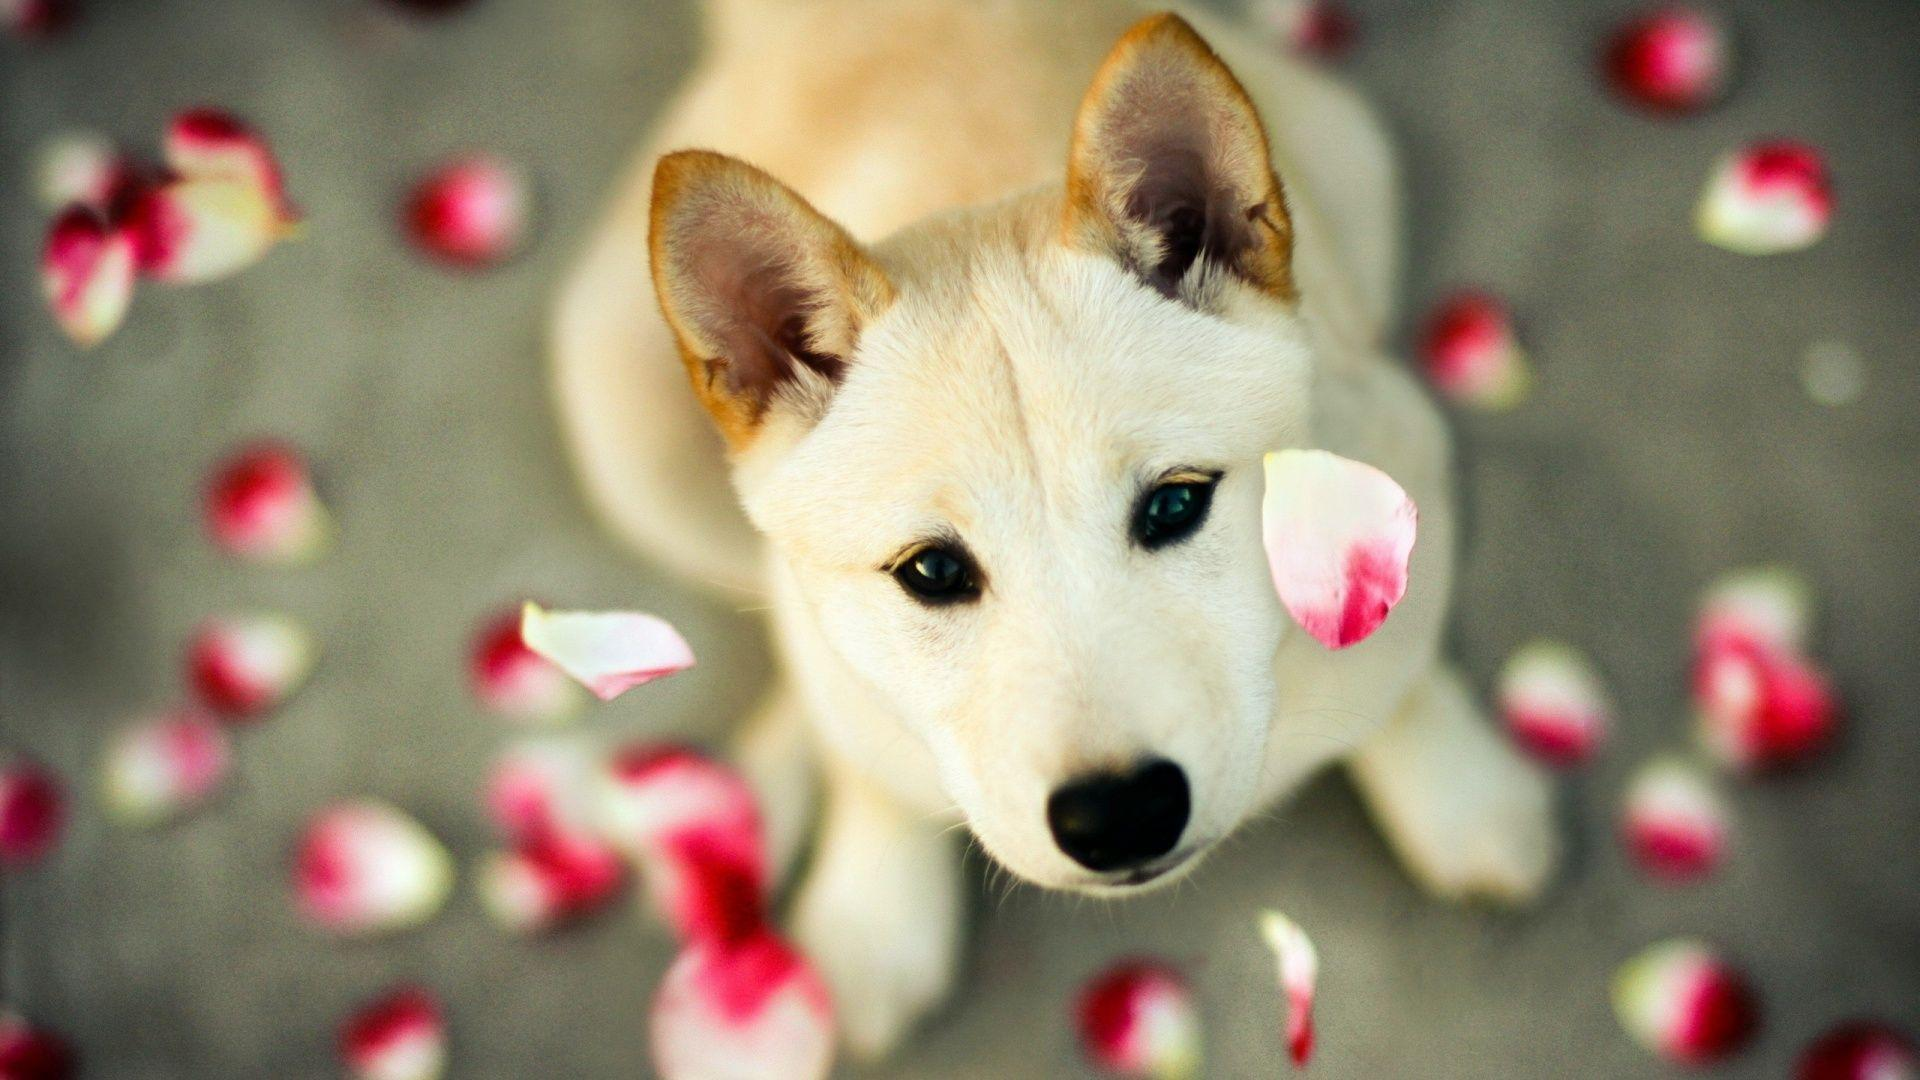 Cute Dog Wallpapers Wallpaper